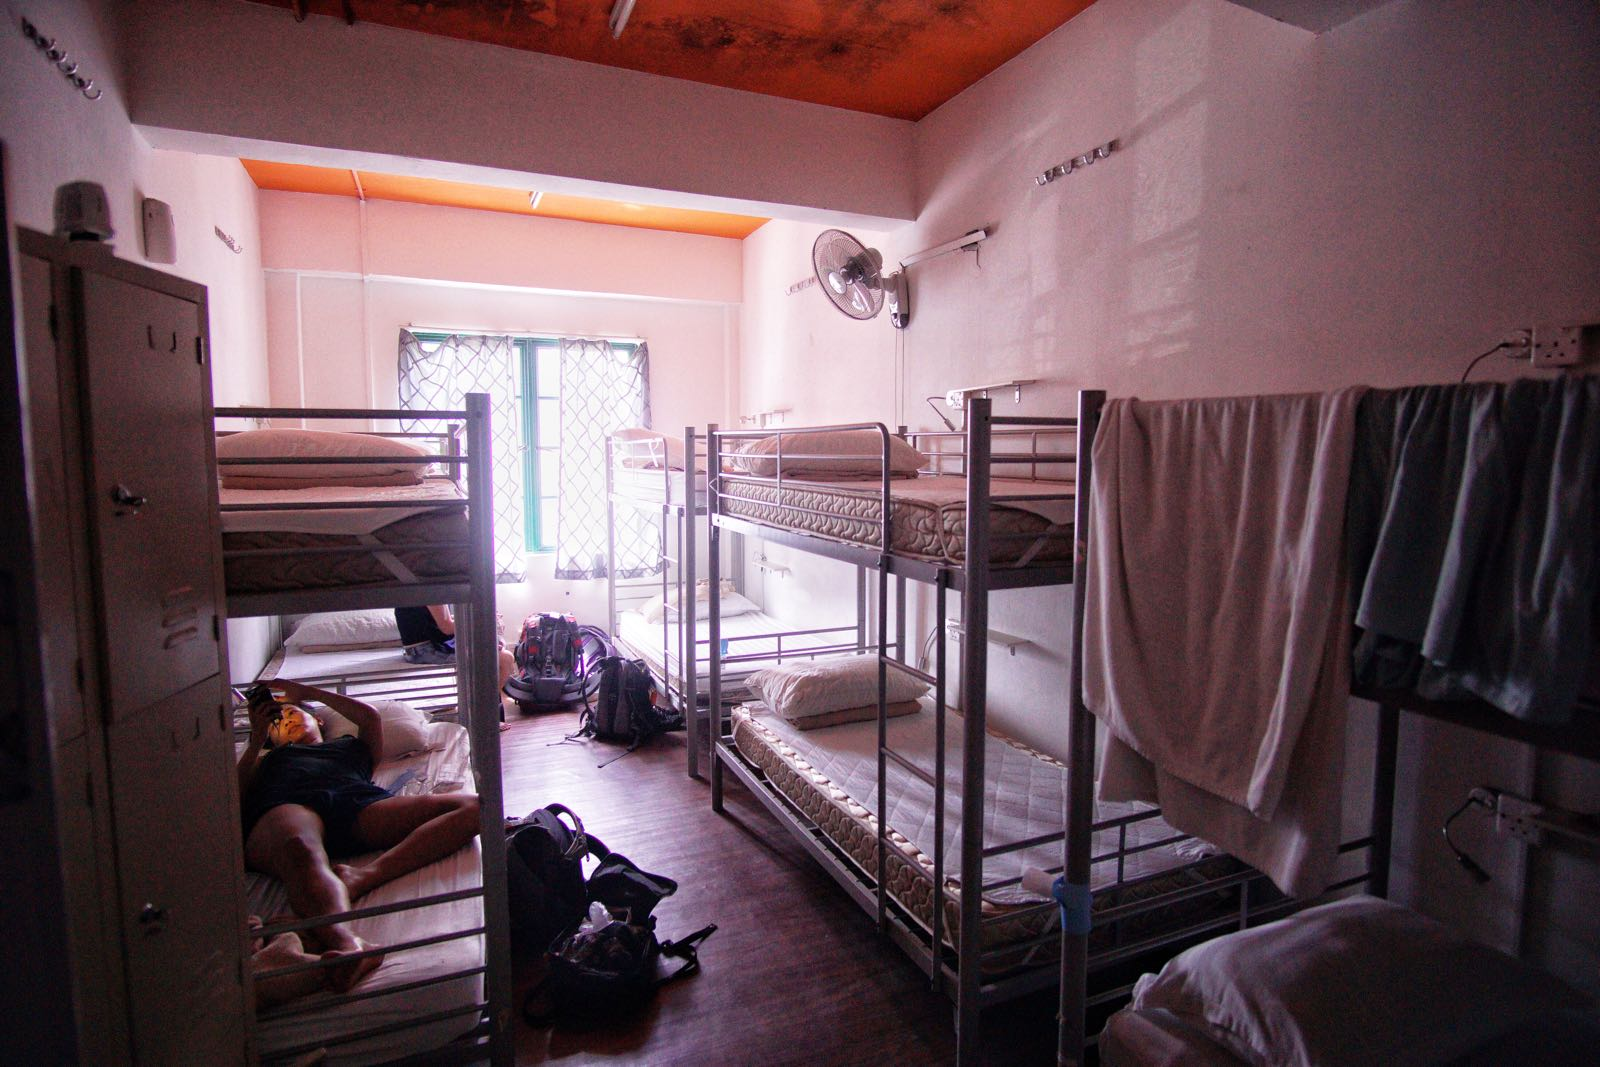 Footprints Hostel Little India Singapore Dorm